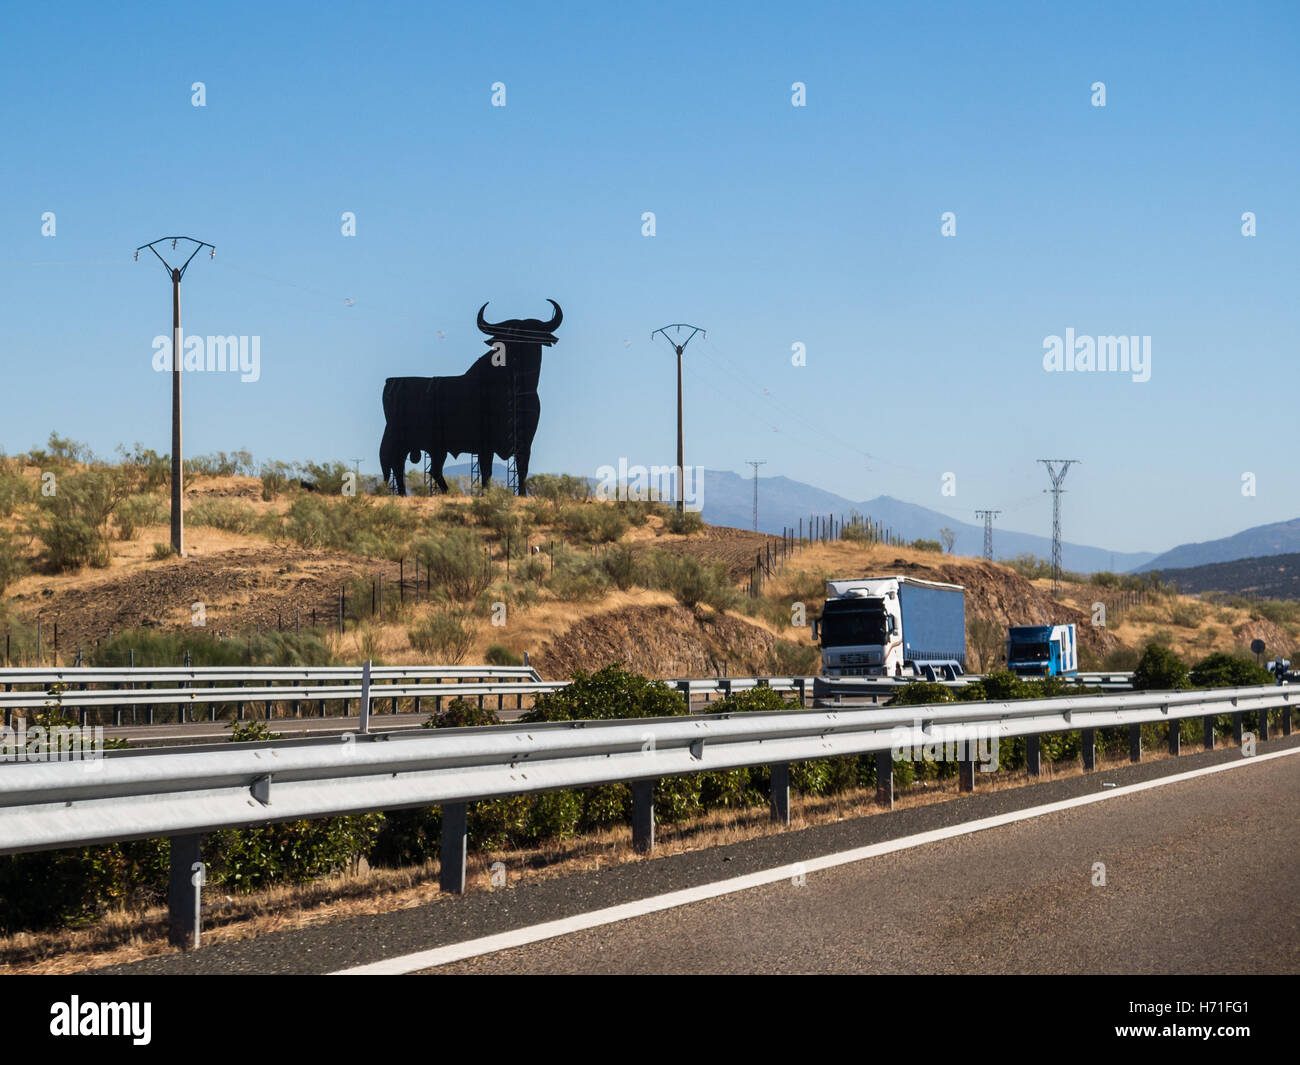 The Osborne bull is a 14-metre (46 ft) high black silhouetted image of a bull and is regarded as the unofficial - Stock Image